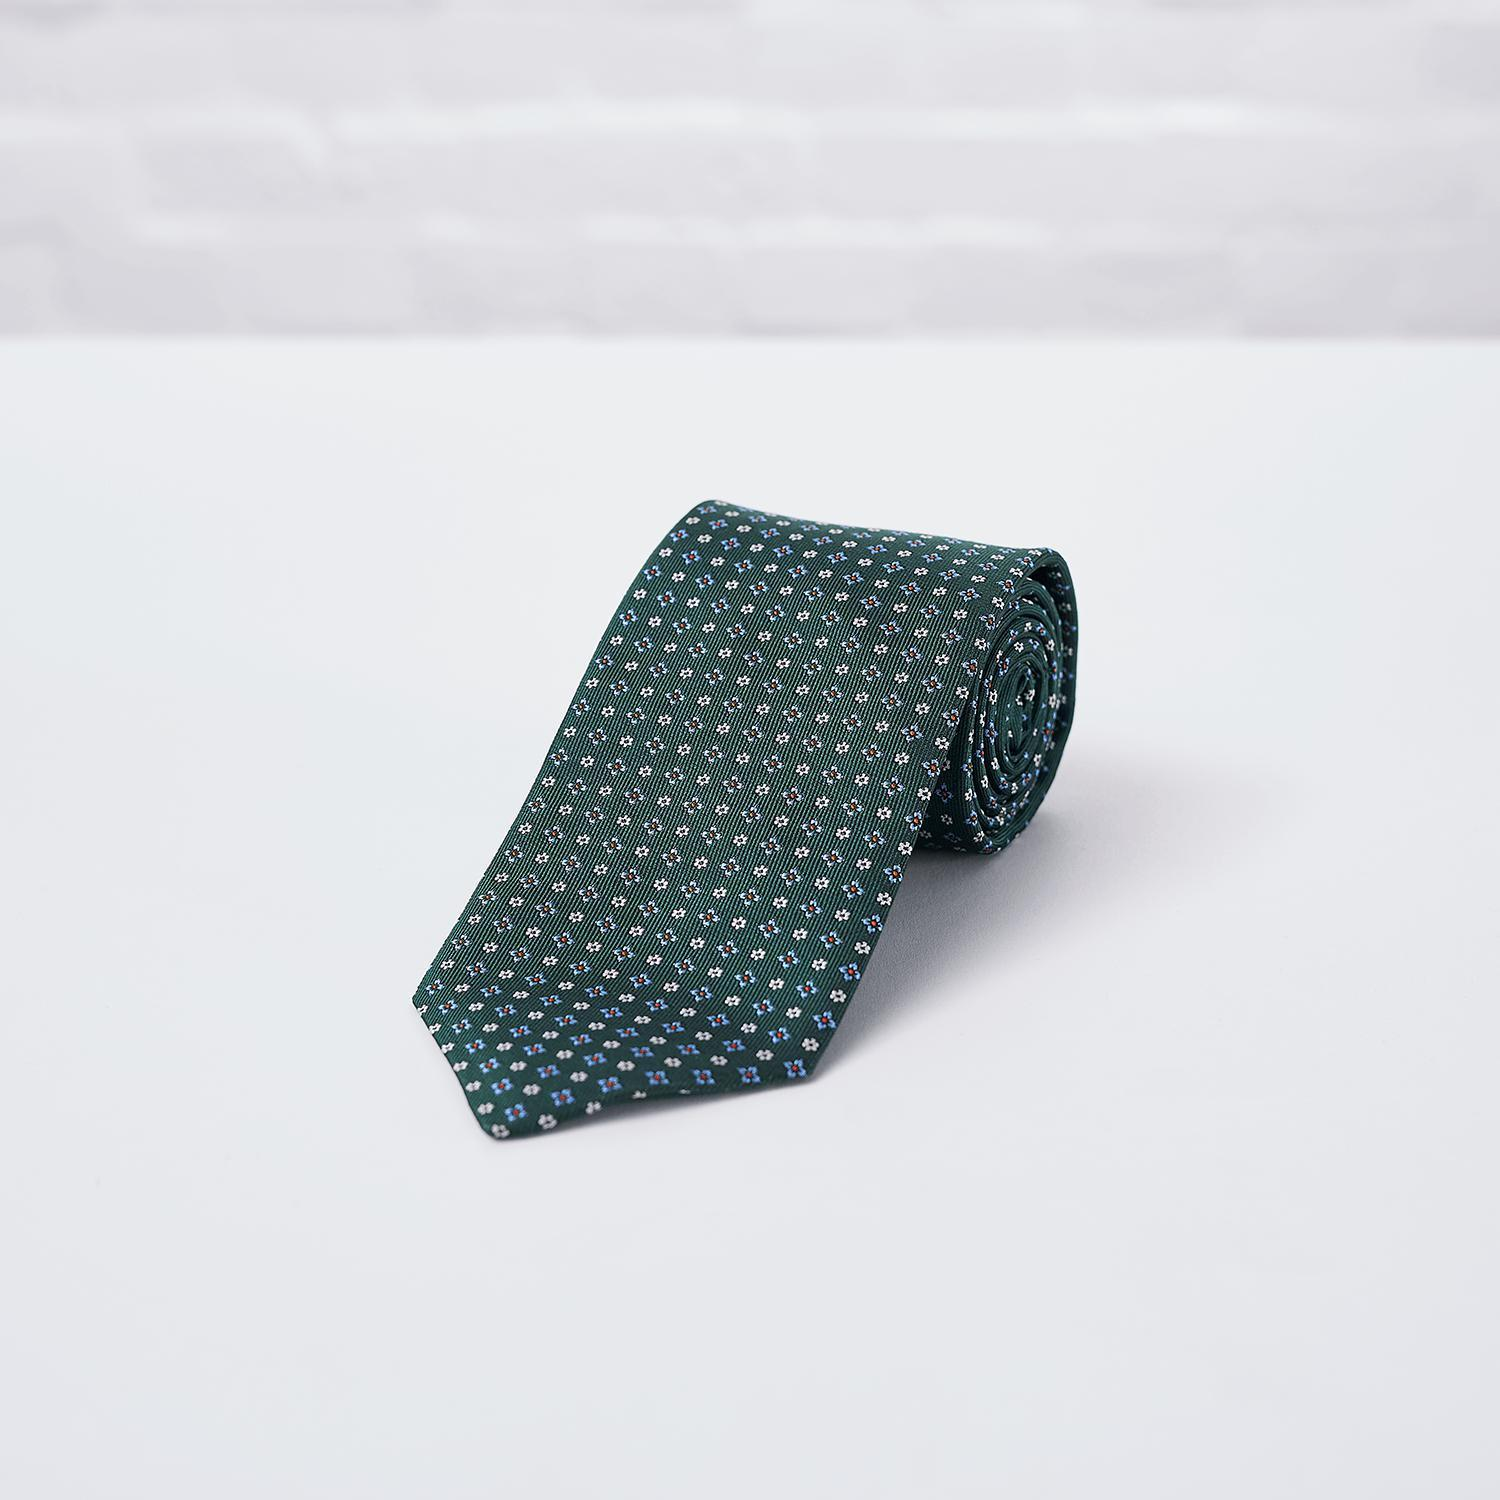 Green Floral Woven Silk Tie - British Made